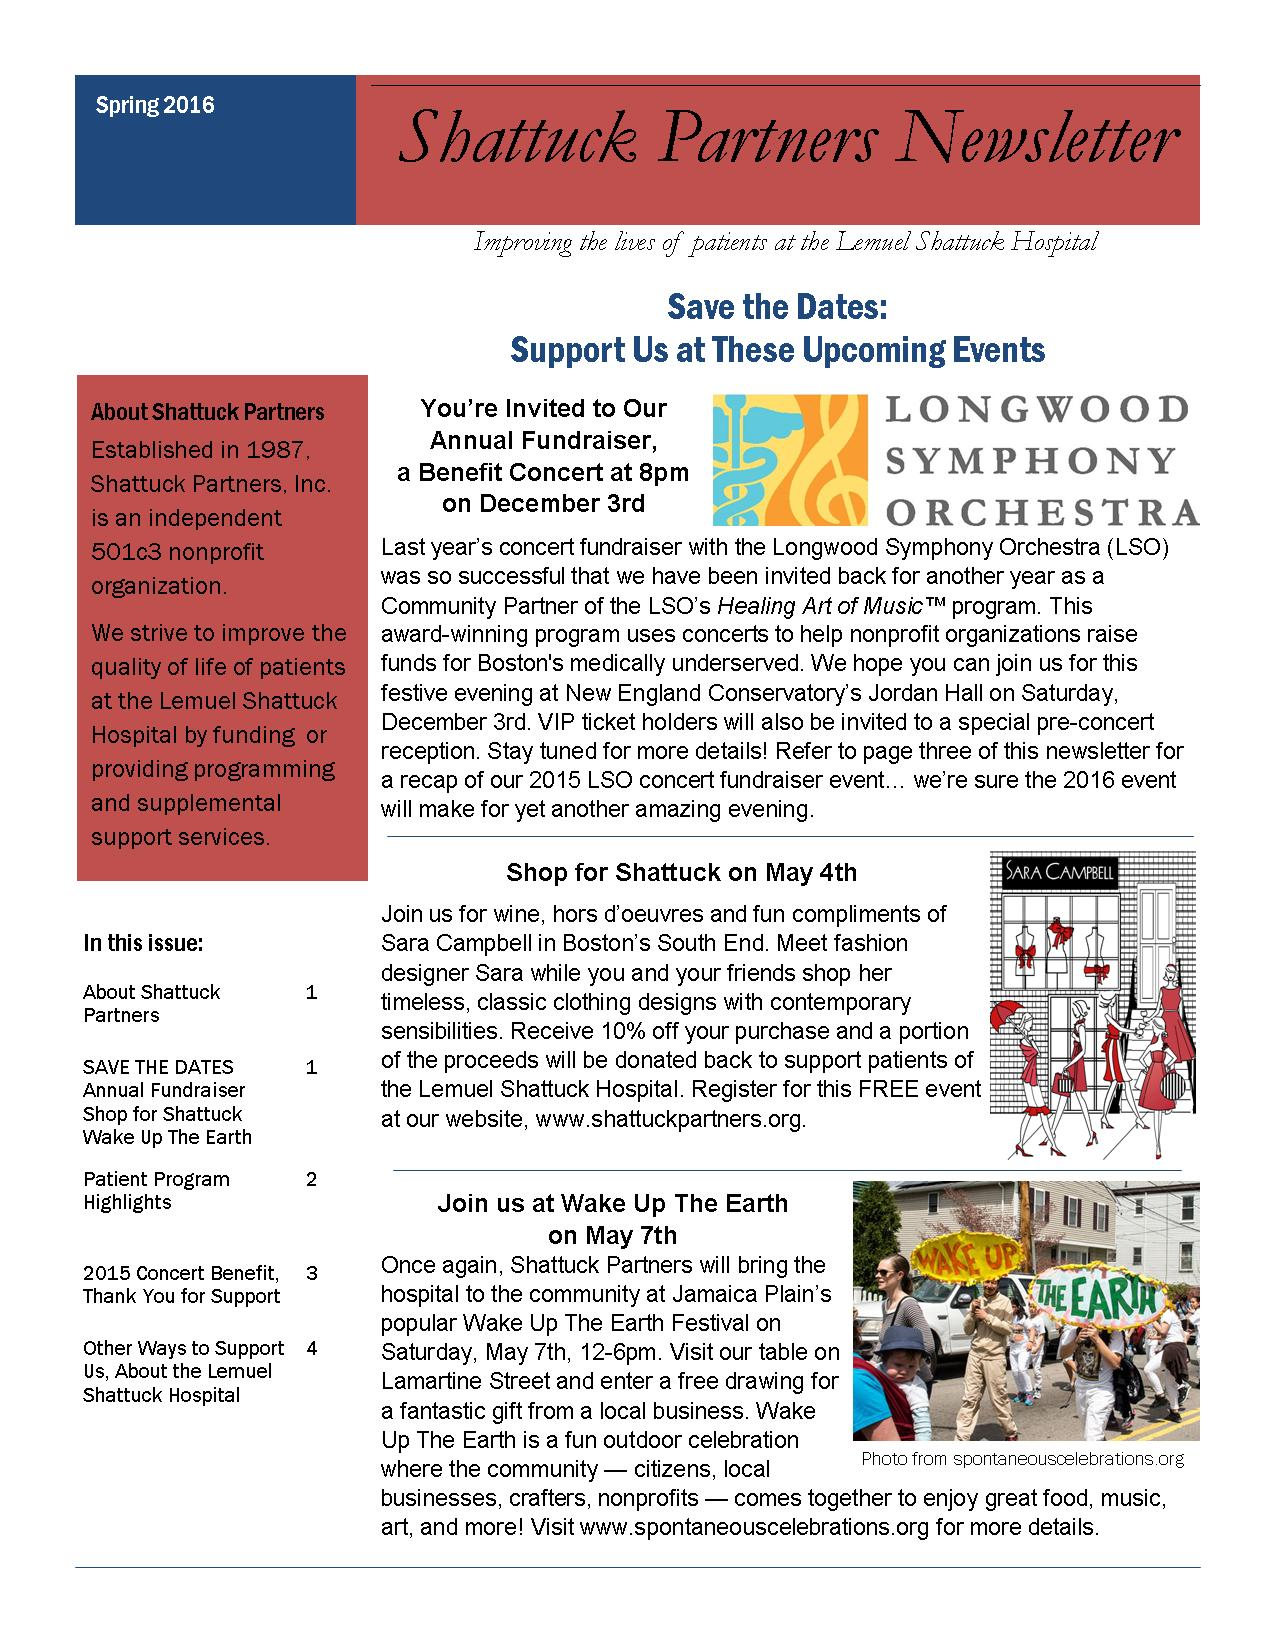 Shattuck Partners Spring Newsletter